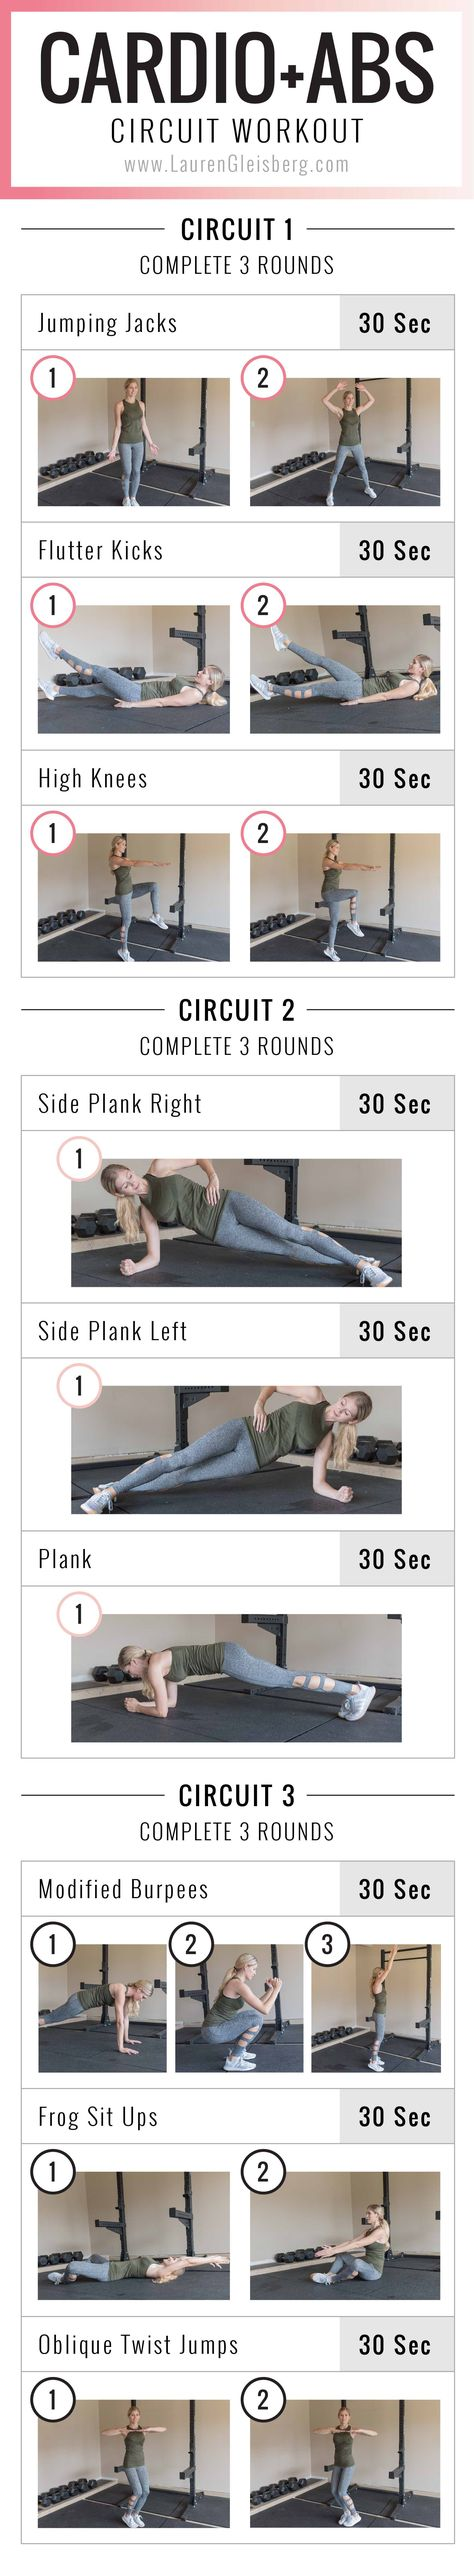 List Of Pinterest Tabata Exercises Circuit Training Boot Camp Hour Hiit Workouts Fitmas Challenge Cardio Abs W2d3